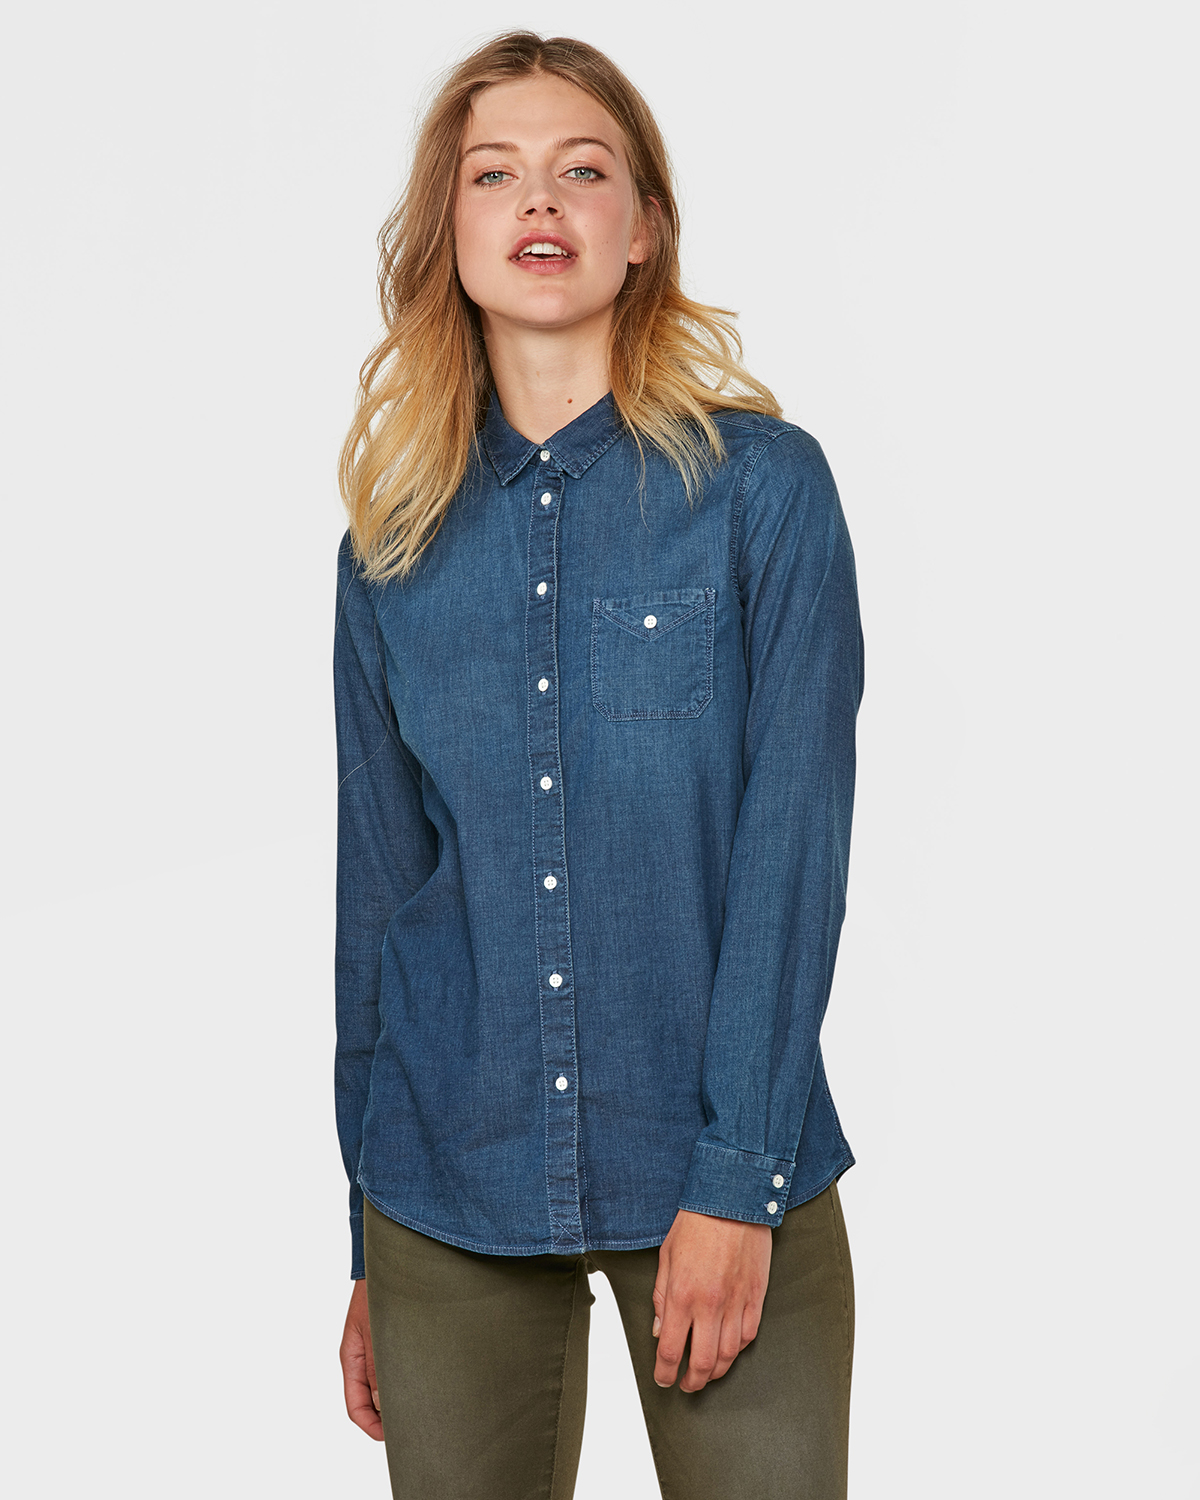 Long Denim Shirtdress: Classic shirtdress style detailed with a button closure, chest pockets, button-cuff sleeves and seaming in back for a perfect fit. Dress falls at the ankle. Dress falls at the ankle.